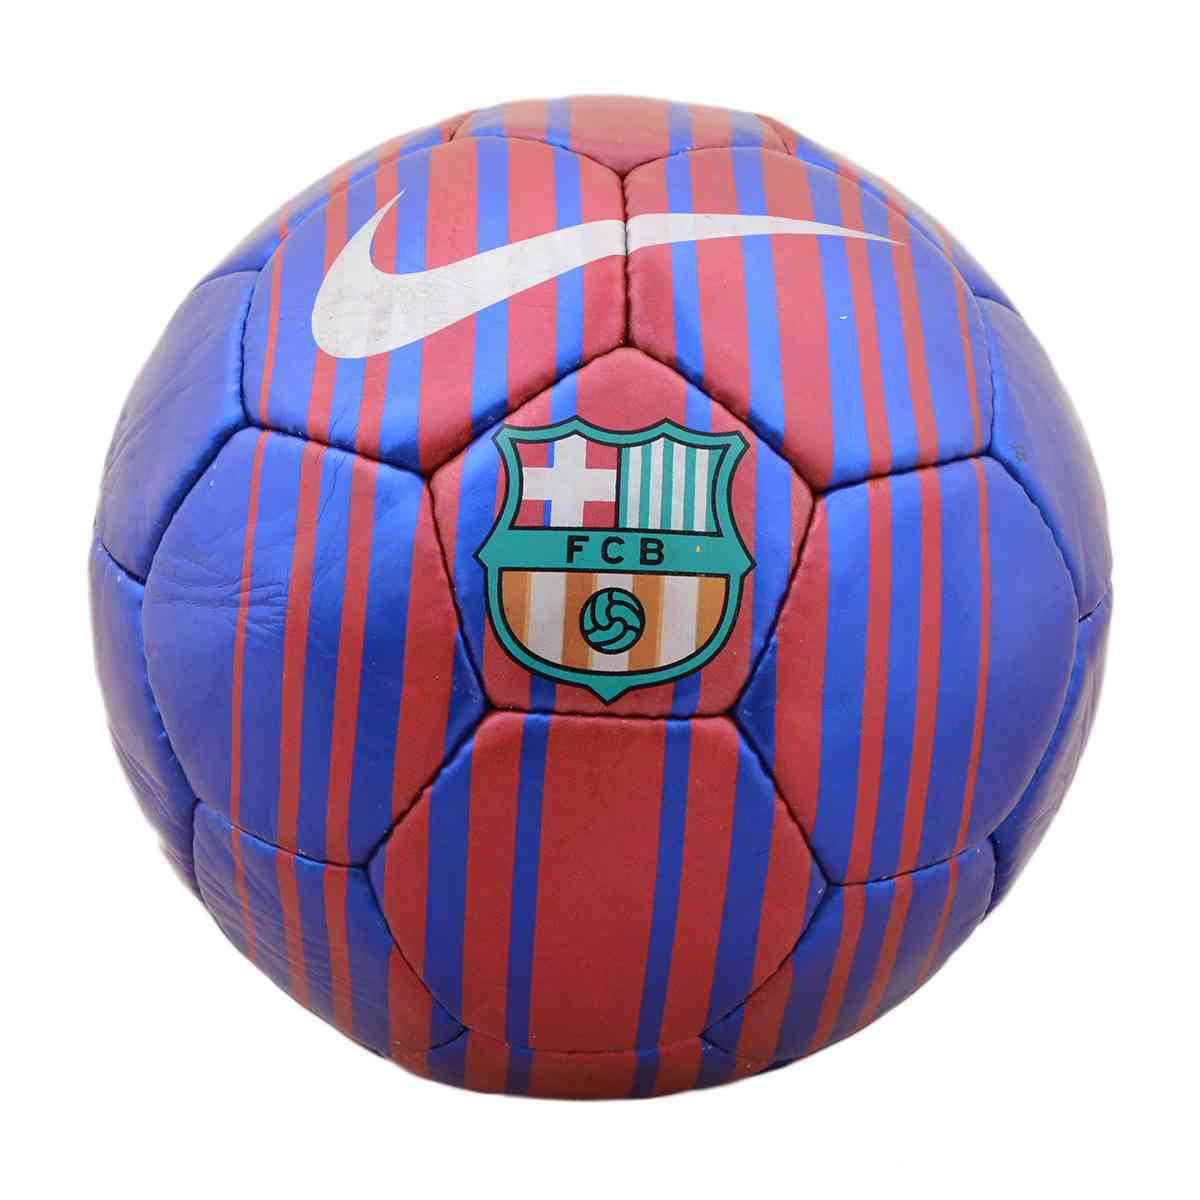 Triple Layered Size 5 Football (Soccer Ball)